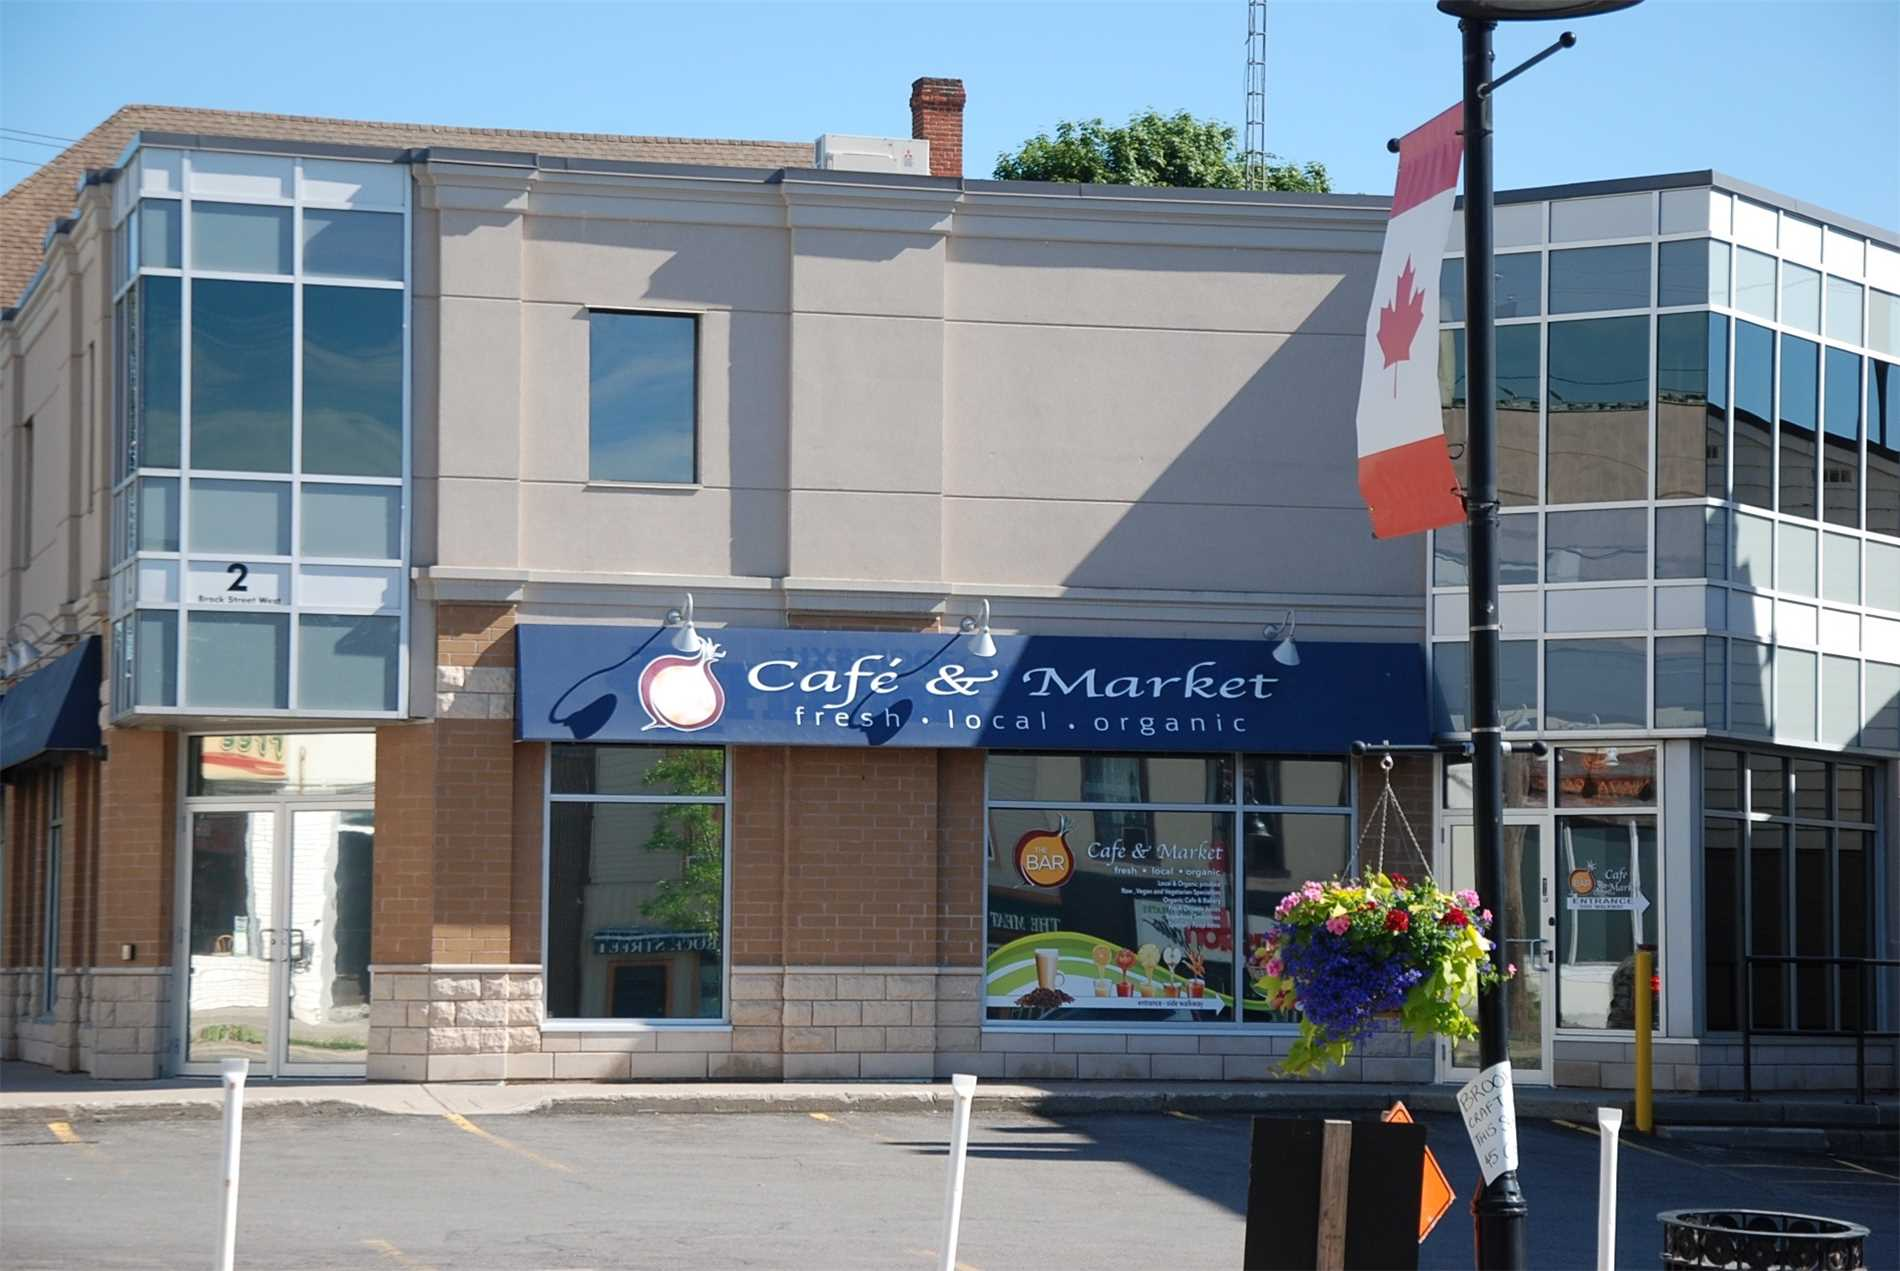 3500 Square Feet In A Great Location, Downtown Uxbridge. Build-Out Possibble, Bright Open Second Floor Unit. Great Health Food Store/Cafe Inn Building. Walk To Coffee And Multiple Restaurants In Downtown Area. Eat Your Lunch At The Park Or Pond Just Down The Street.